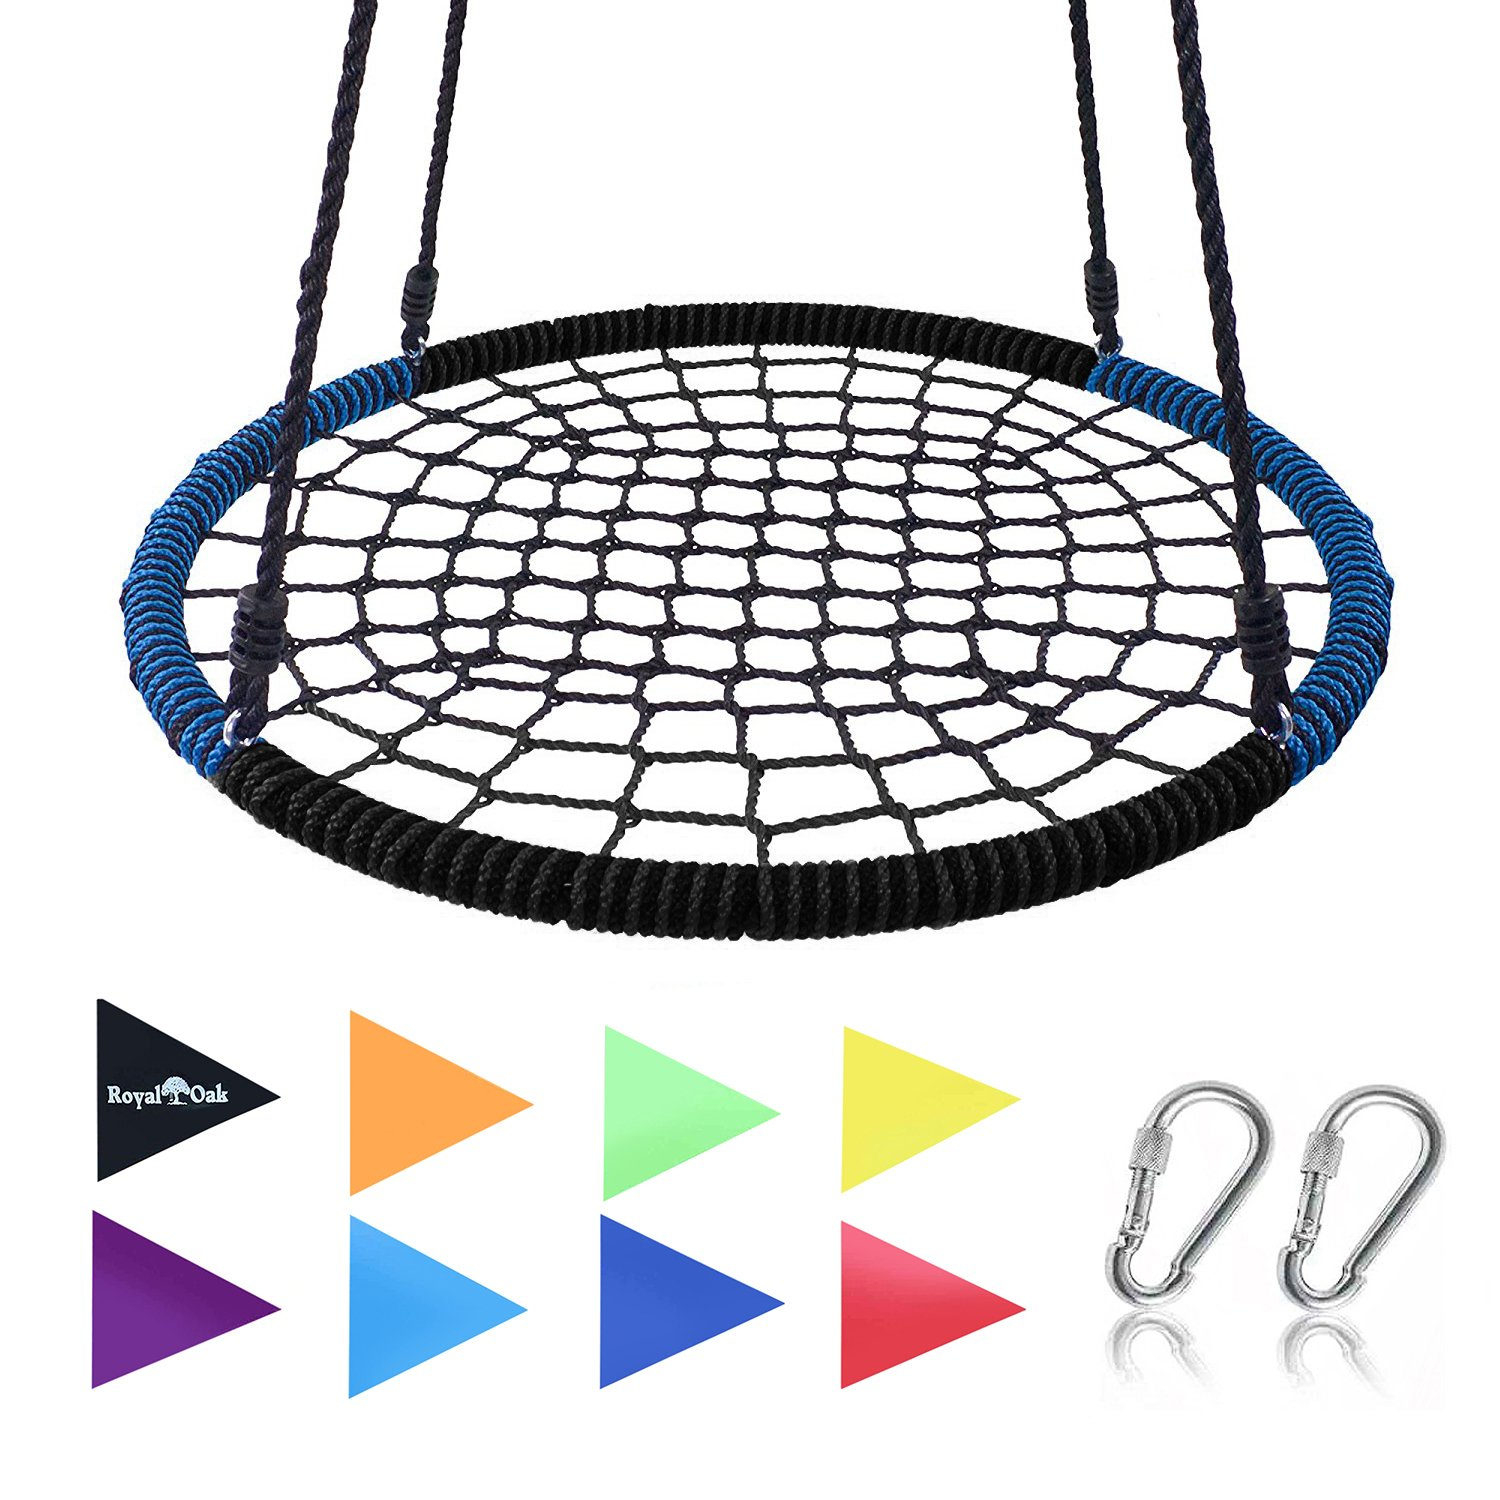 Giant 40'' Spider Web Tree Swing in Blue/Black, Ultra Strong Steel Frame, Industrial Grade Rope, Super Easy Instructions, Hangs In Seconds, No Assembly, Non-Stop Fun, Great For Kids and Parties! … by Royal Oak